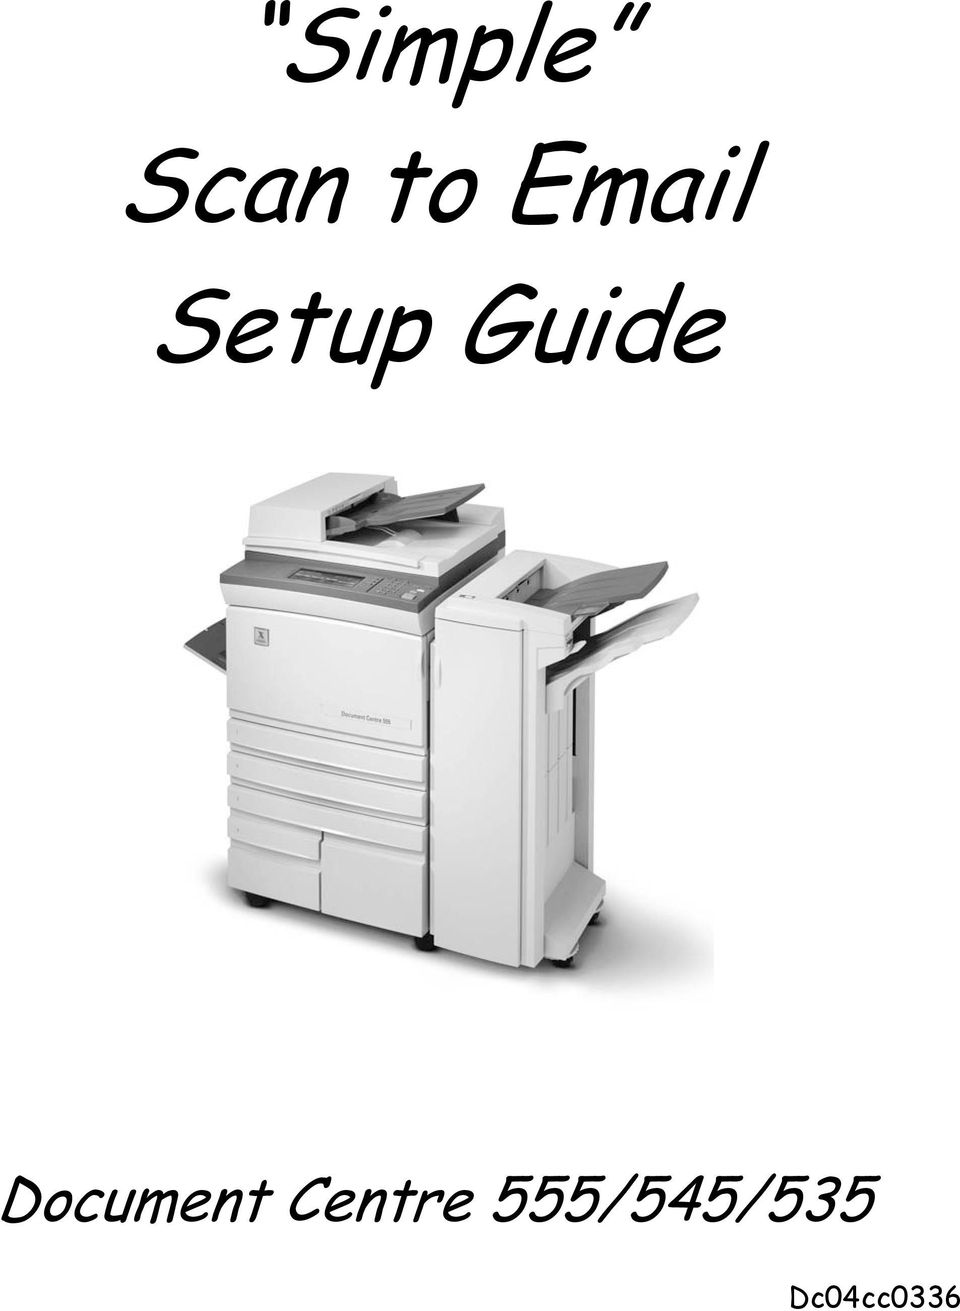 Xerox Scan To Email Setup